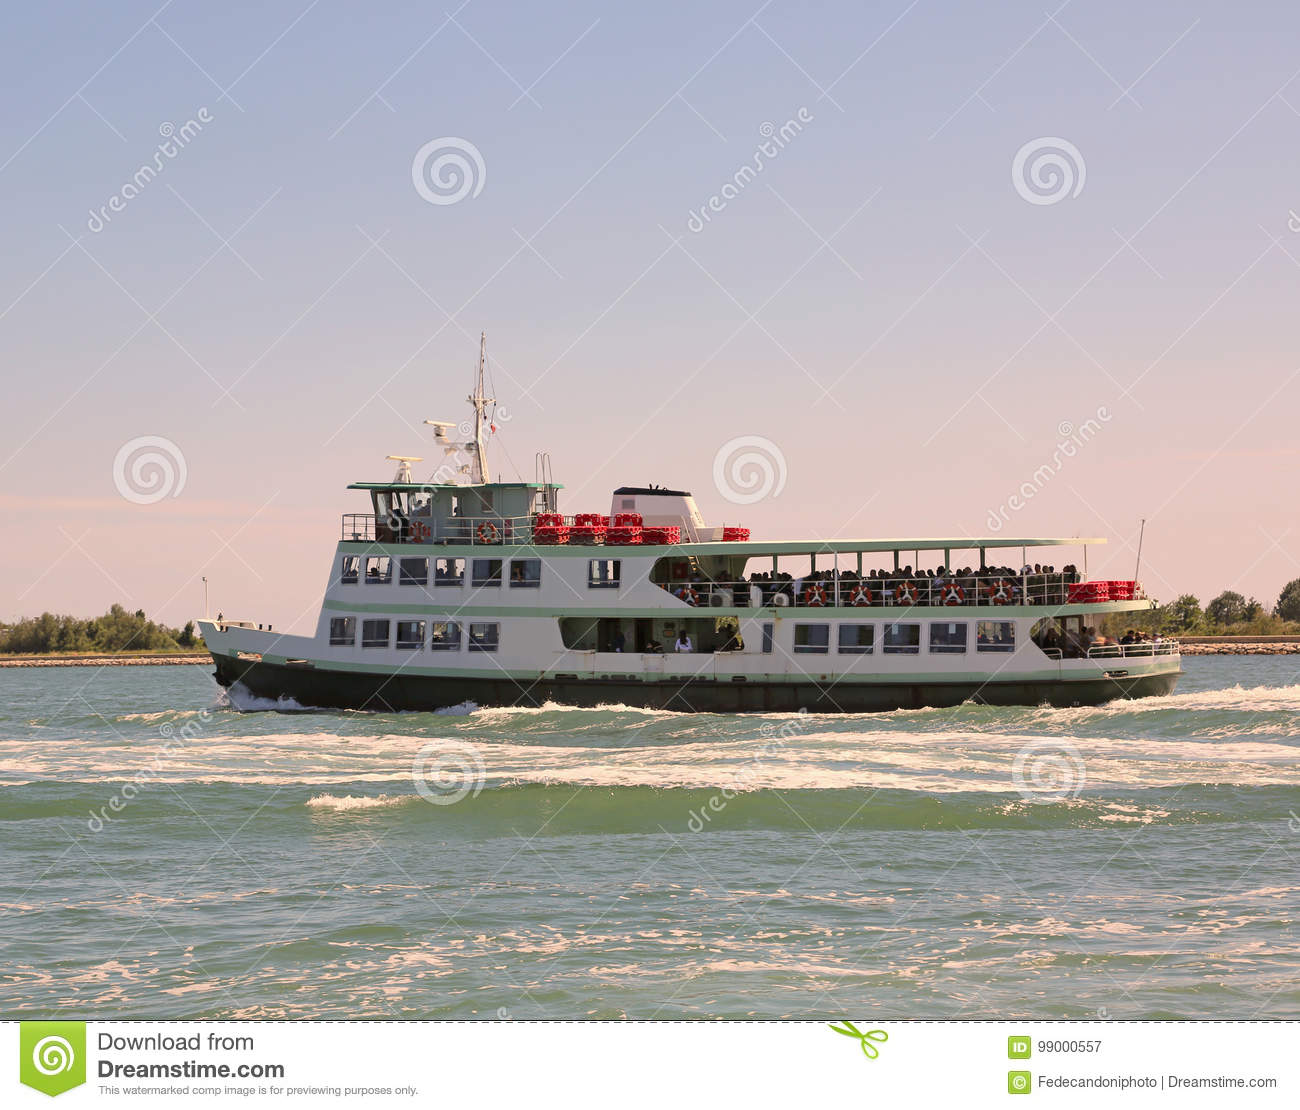 Passenger Ship For The Transport Of Tourists Called Vaporetto In